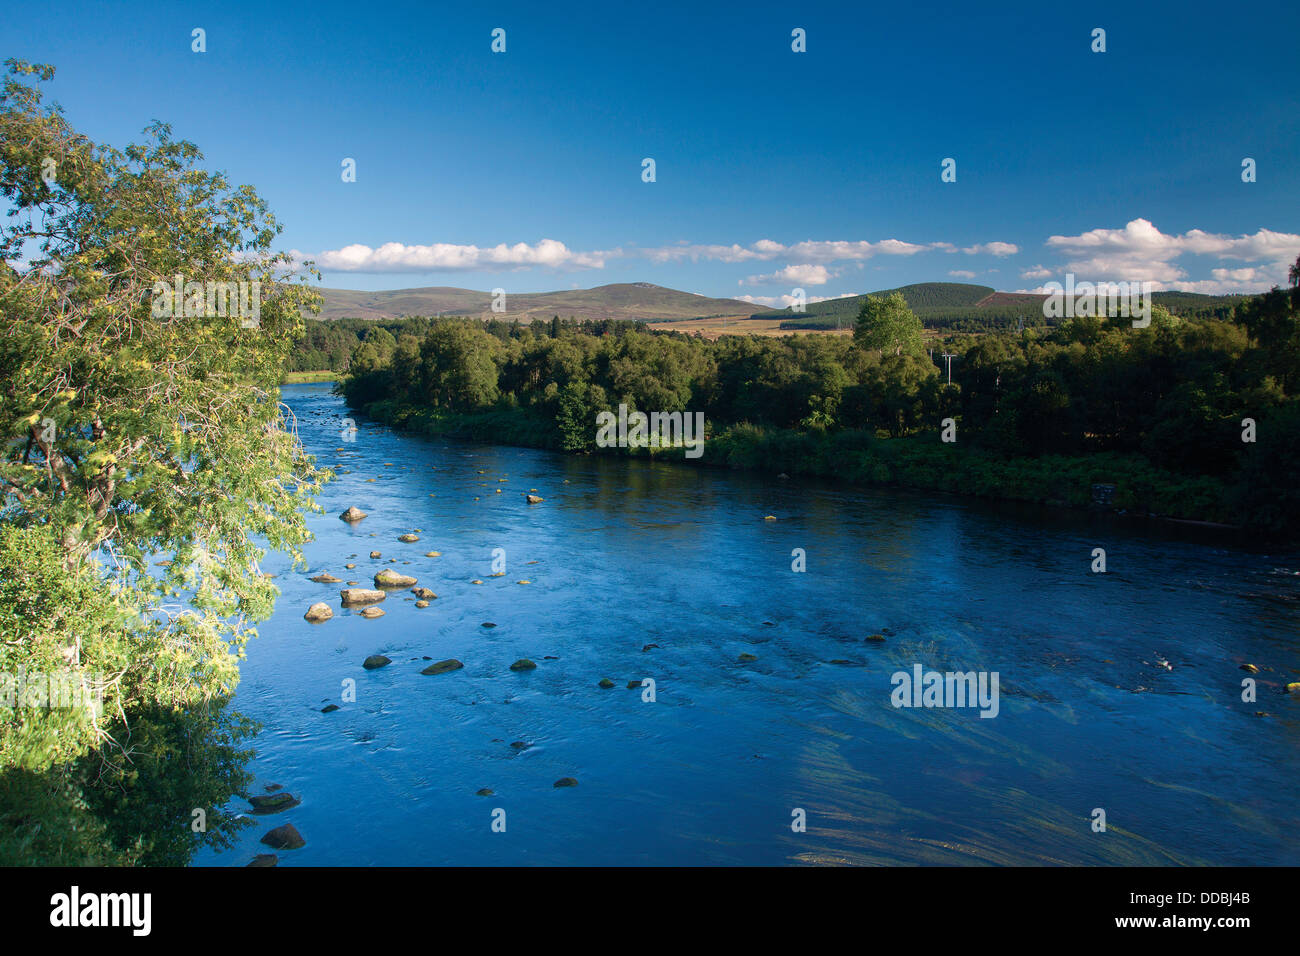 The River Spey near Grantown-on-Spey, Cairngorm National Park, Highland - Stock Image